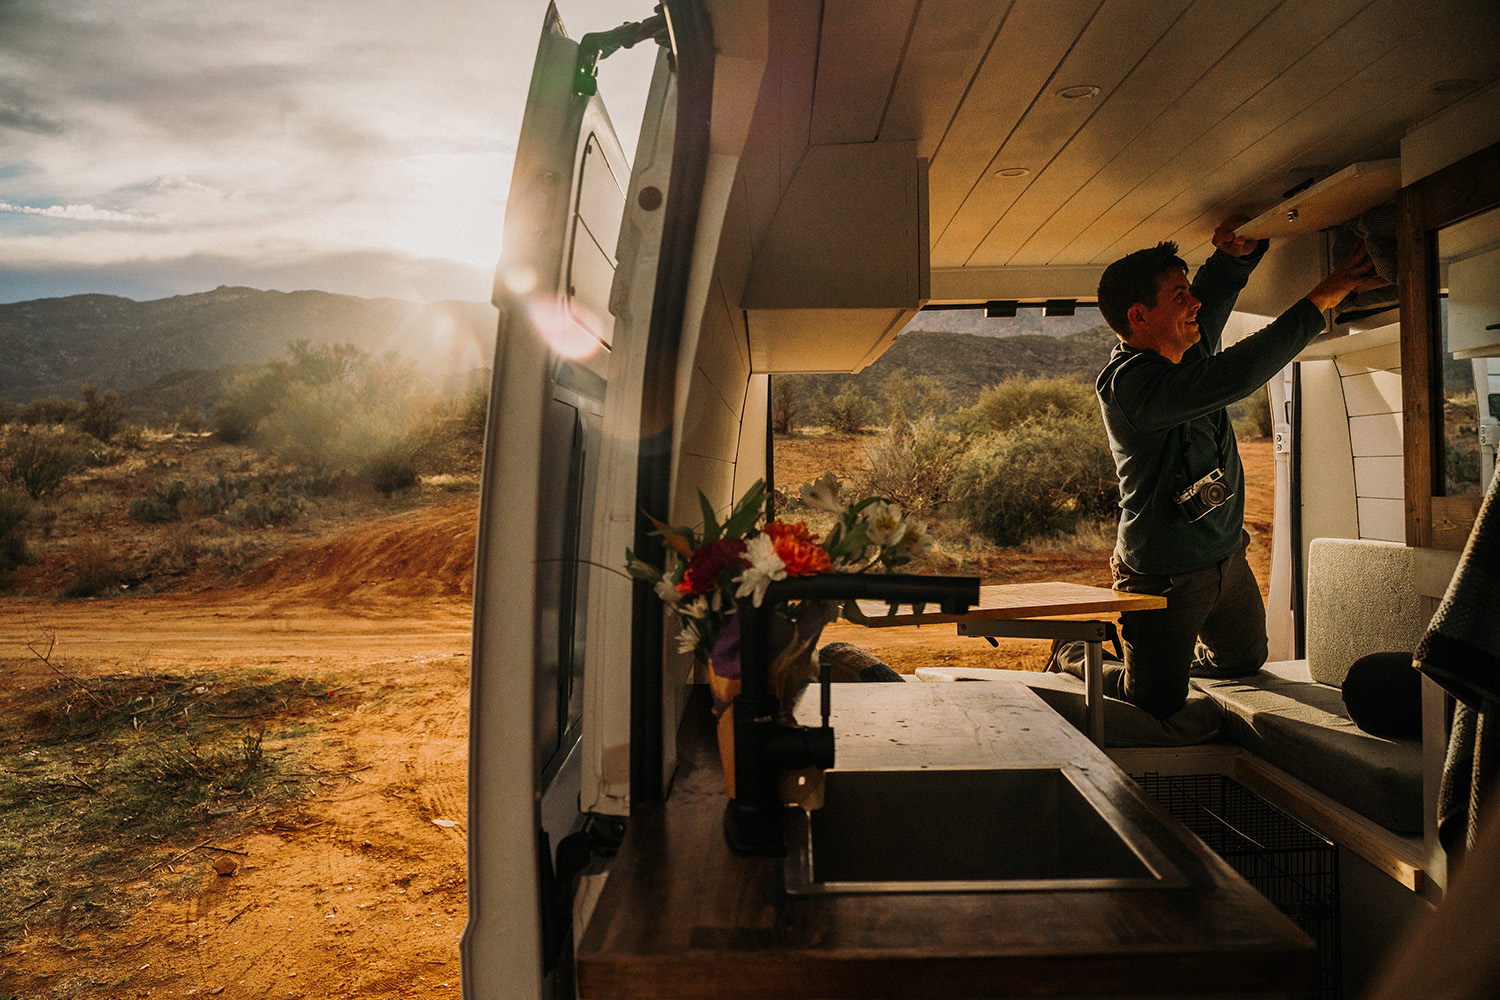 Arizona Van Life Photographer Josh Hartman